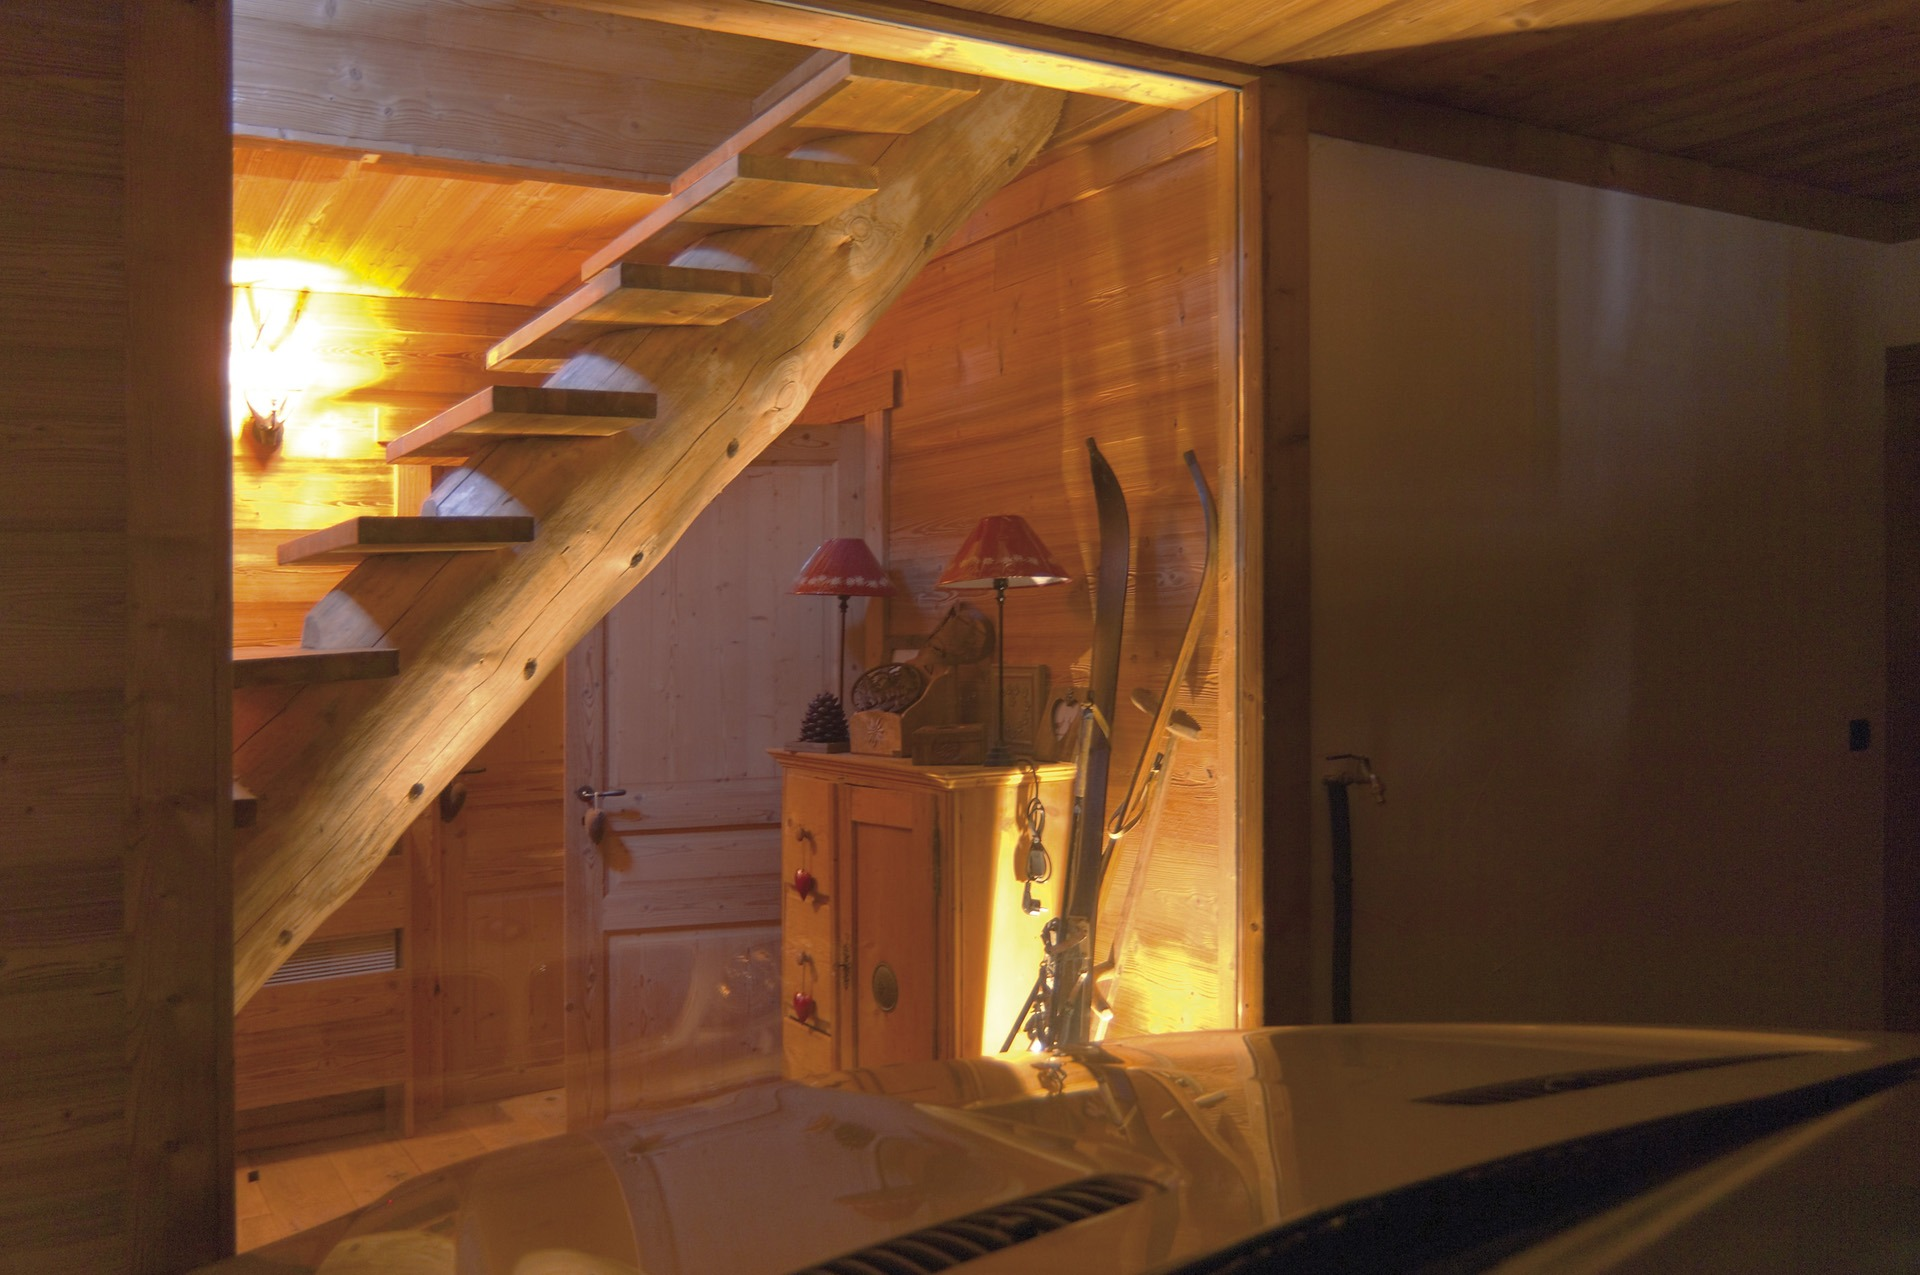 Pin le cerf on pinterest for Petit escalier en bois